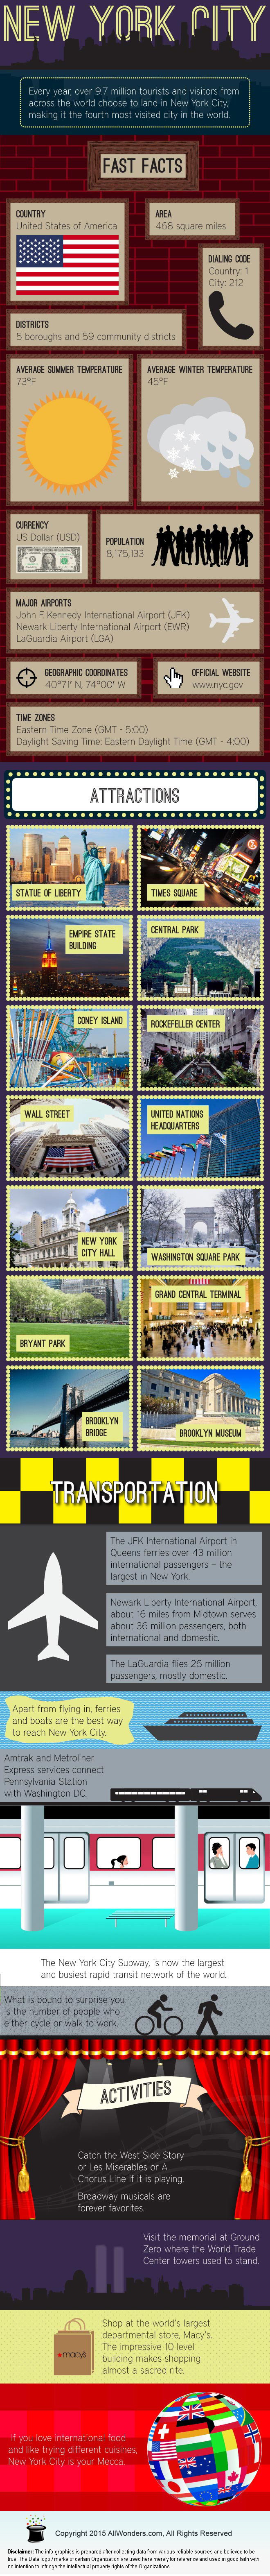 New York City Travel Infographic, Facts about New York City